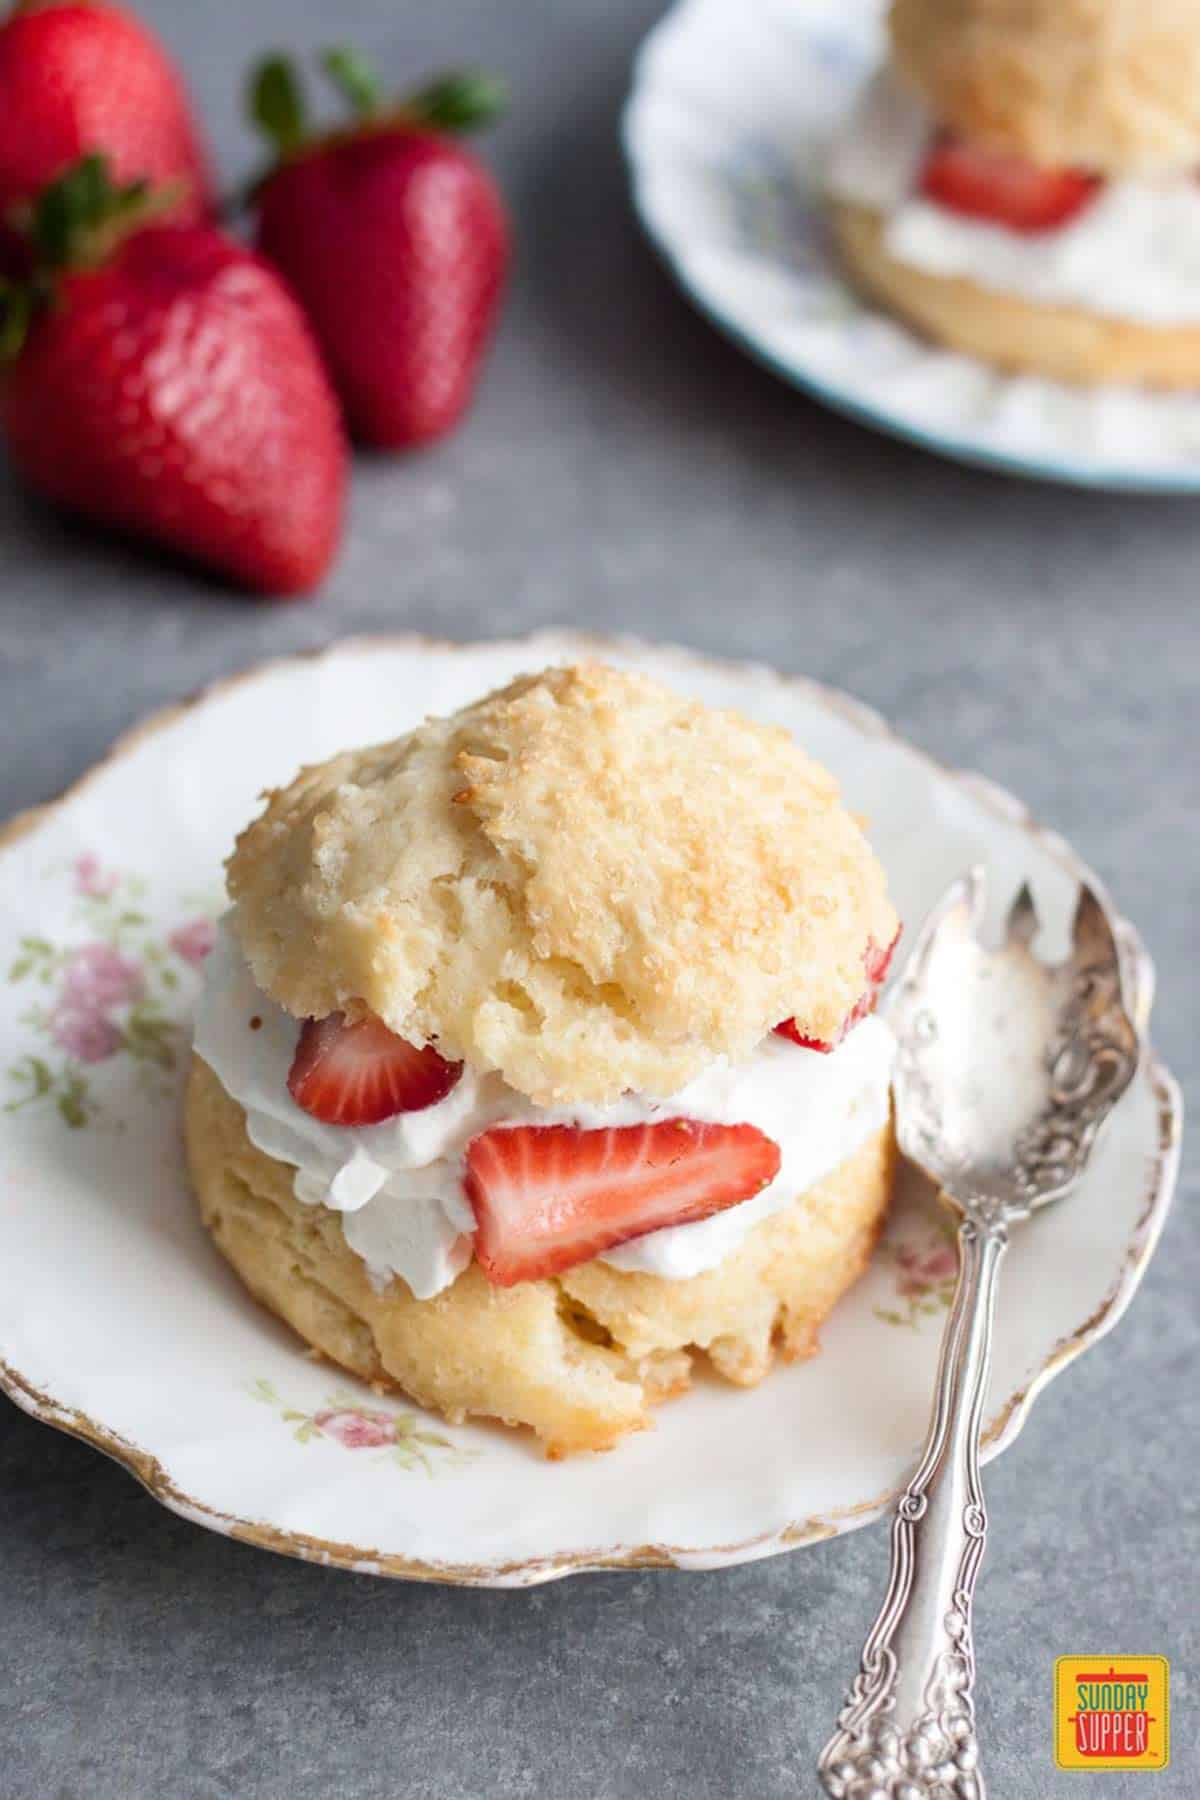 strawberry shortcake biscuit on a plate with a spoon